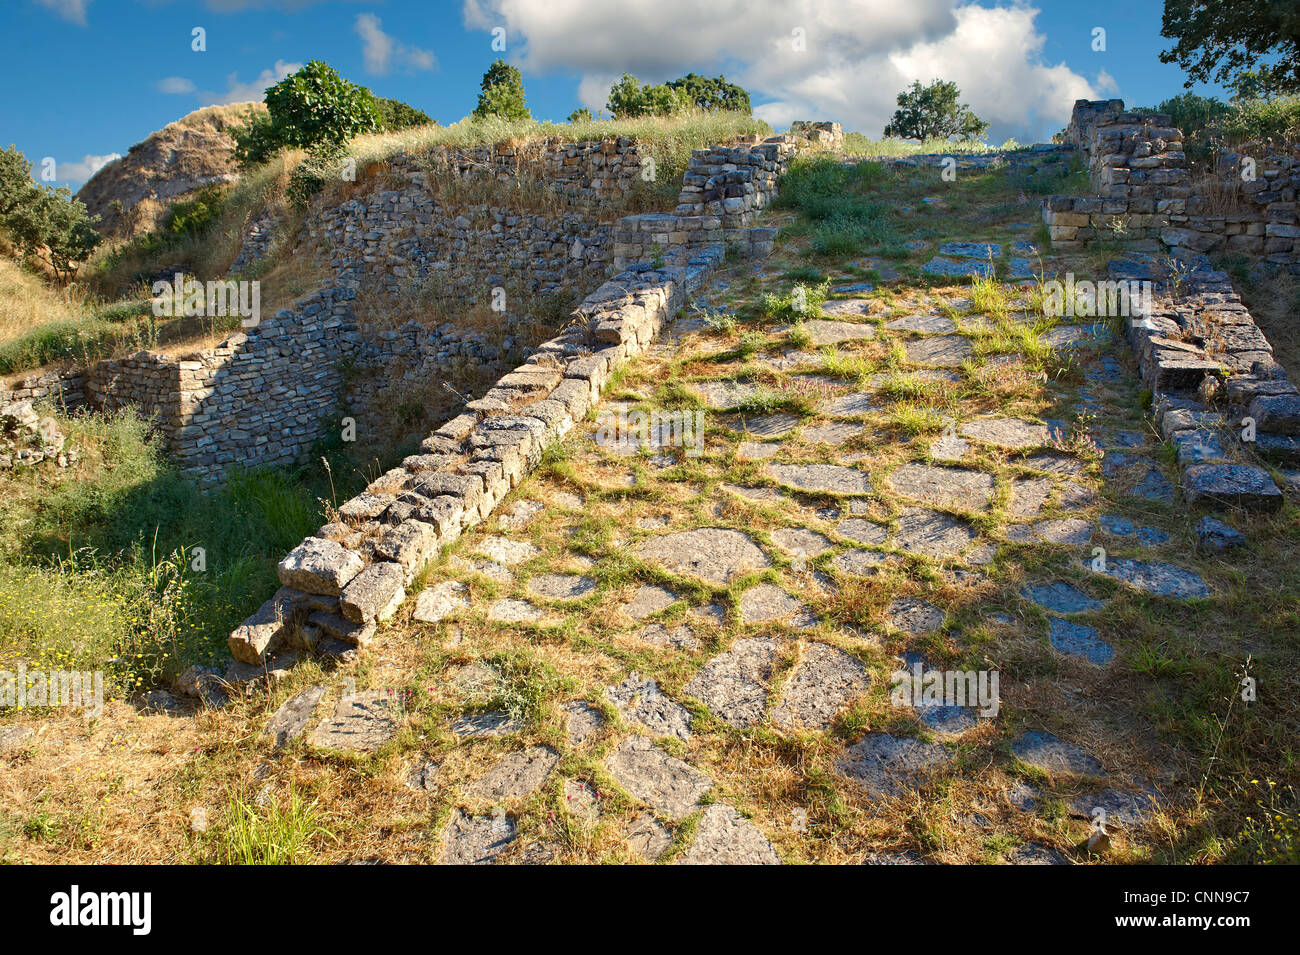 Ruins of the Acropolis of Ancient Troy Archaeological site - Stock Image